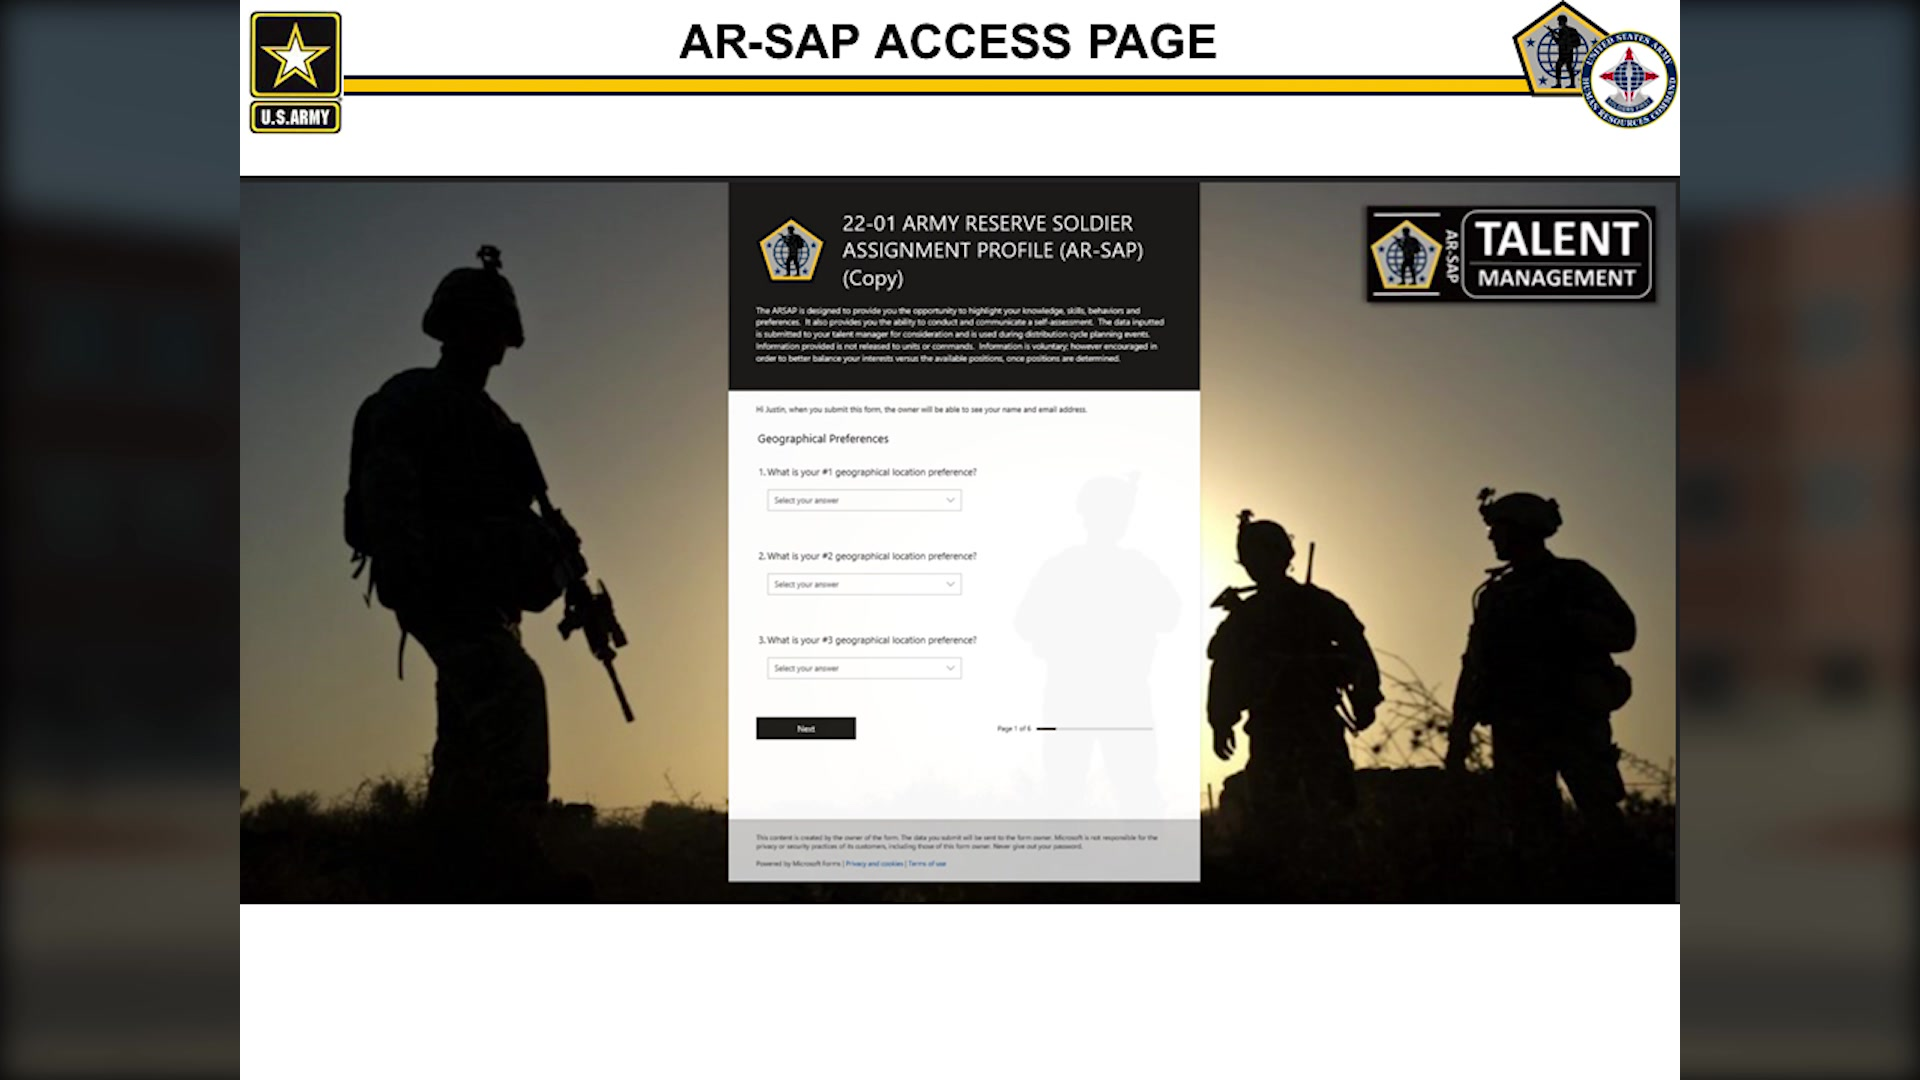 Brig. Gen. Kris Belanger, deputy commanding general, U.S. Army Human Resources Command and director of the Reserve Personnel Management Directorate discusses RPMD and AR-SAP, the Army Reserve - Soldier Assignment Profile. Produced by Glenn Schrock and Scott Bakalars